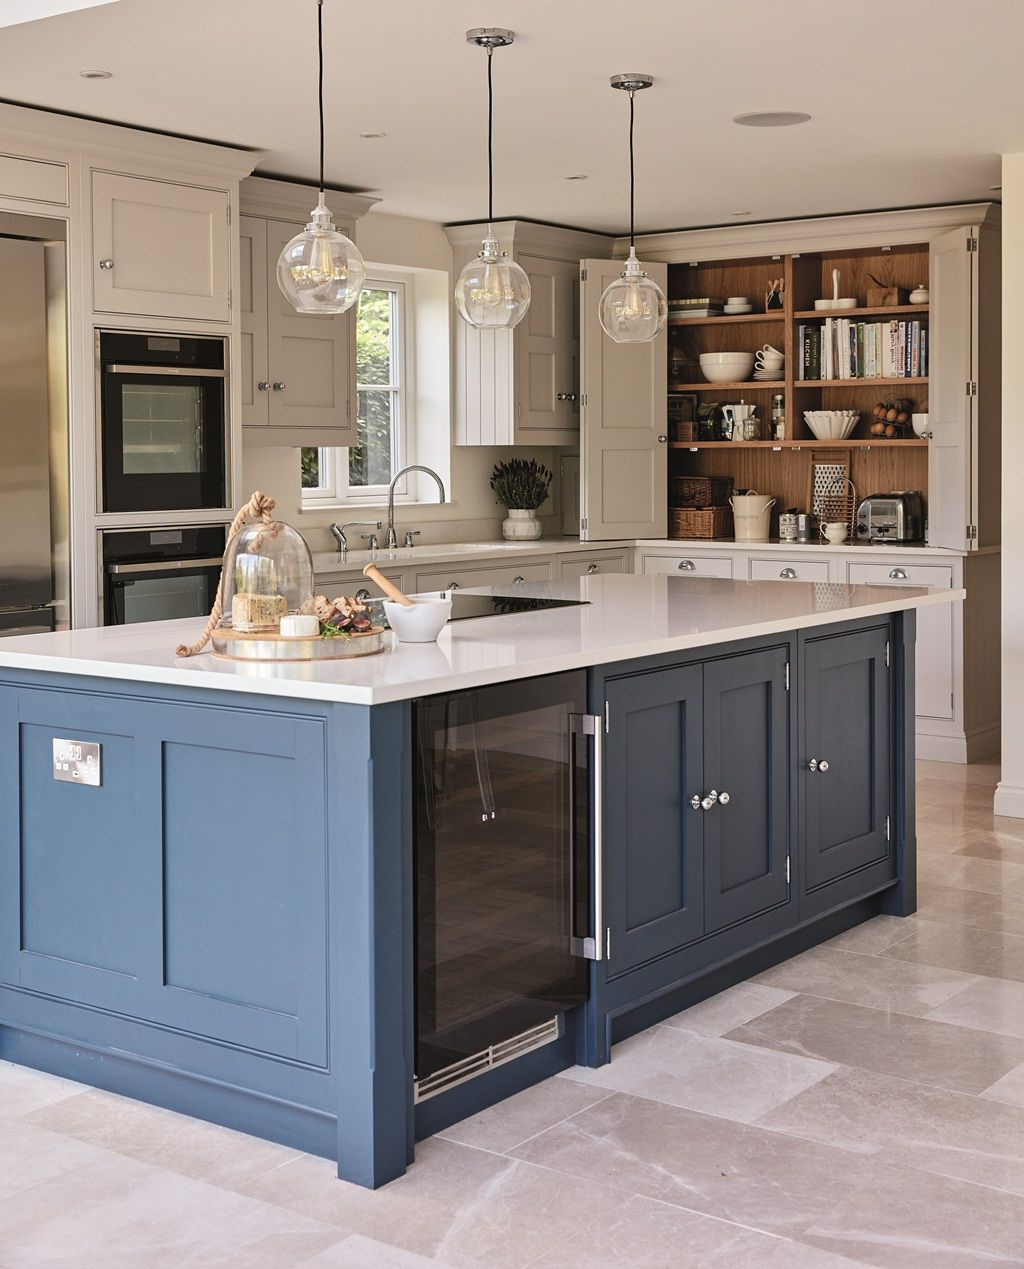 Kitchen Cabinet Ideas For 2019 Modern Kitchens With A